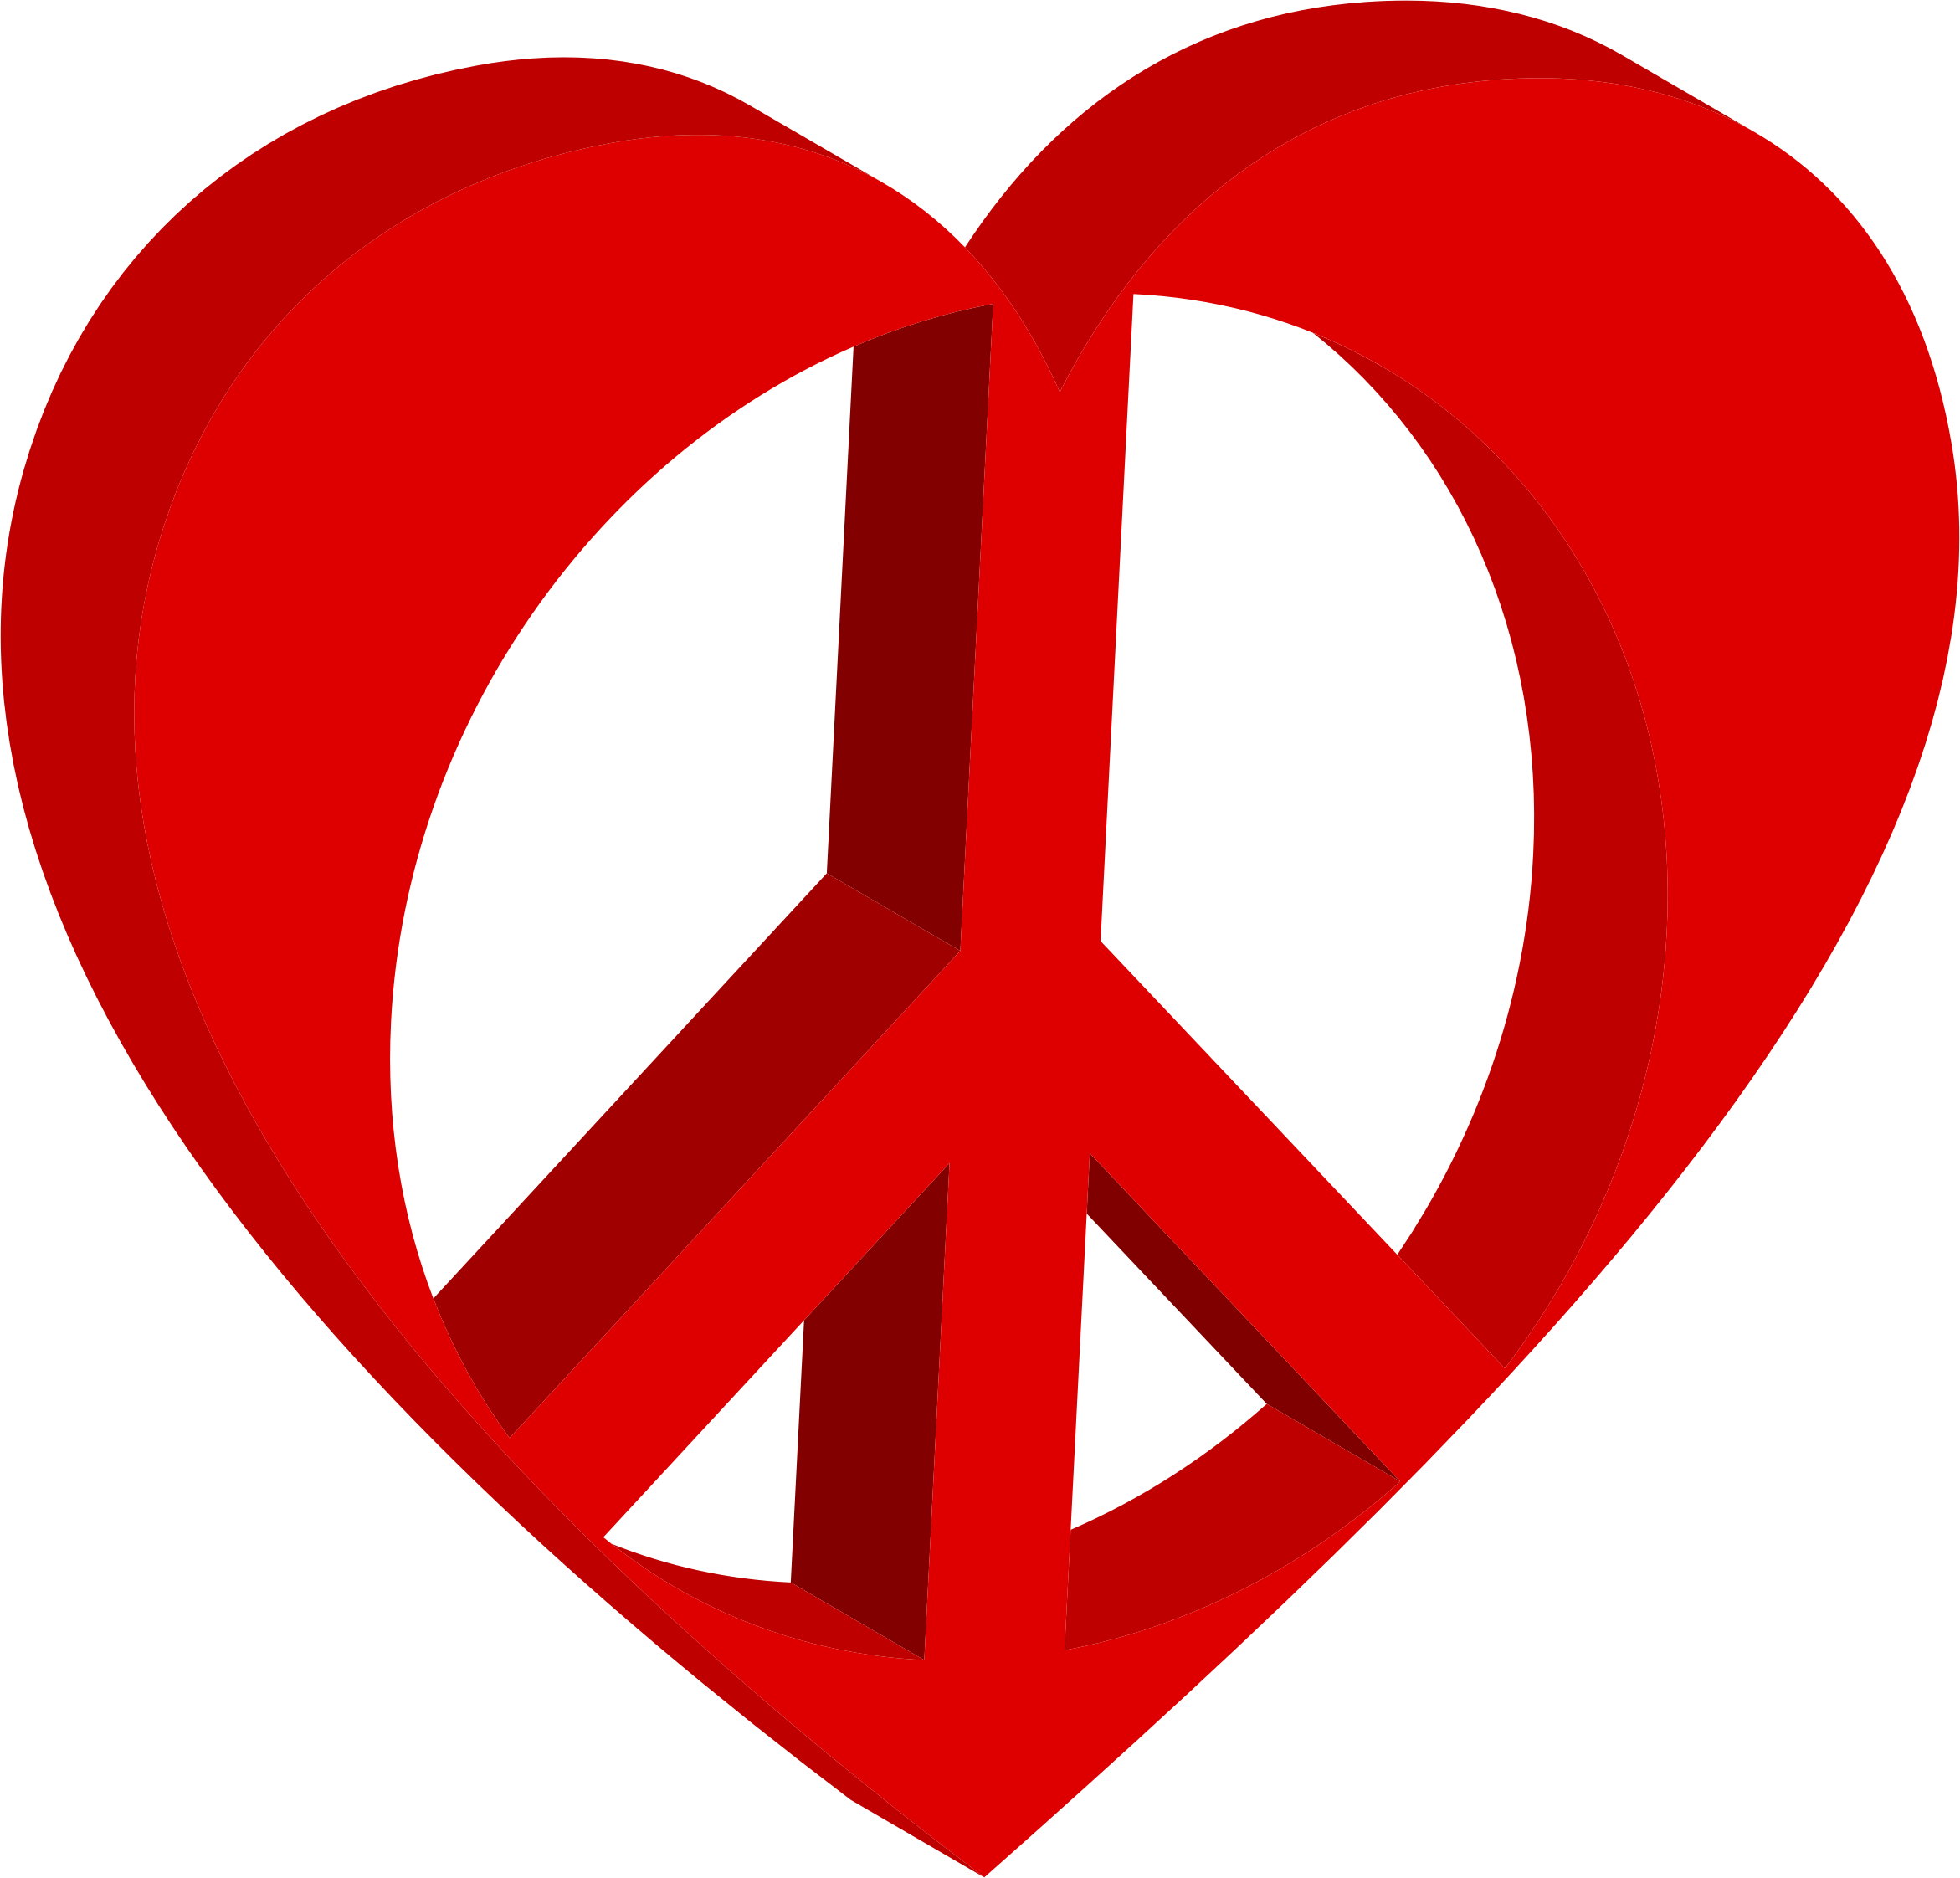 Clipart - 3D Peace Heart Mark II